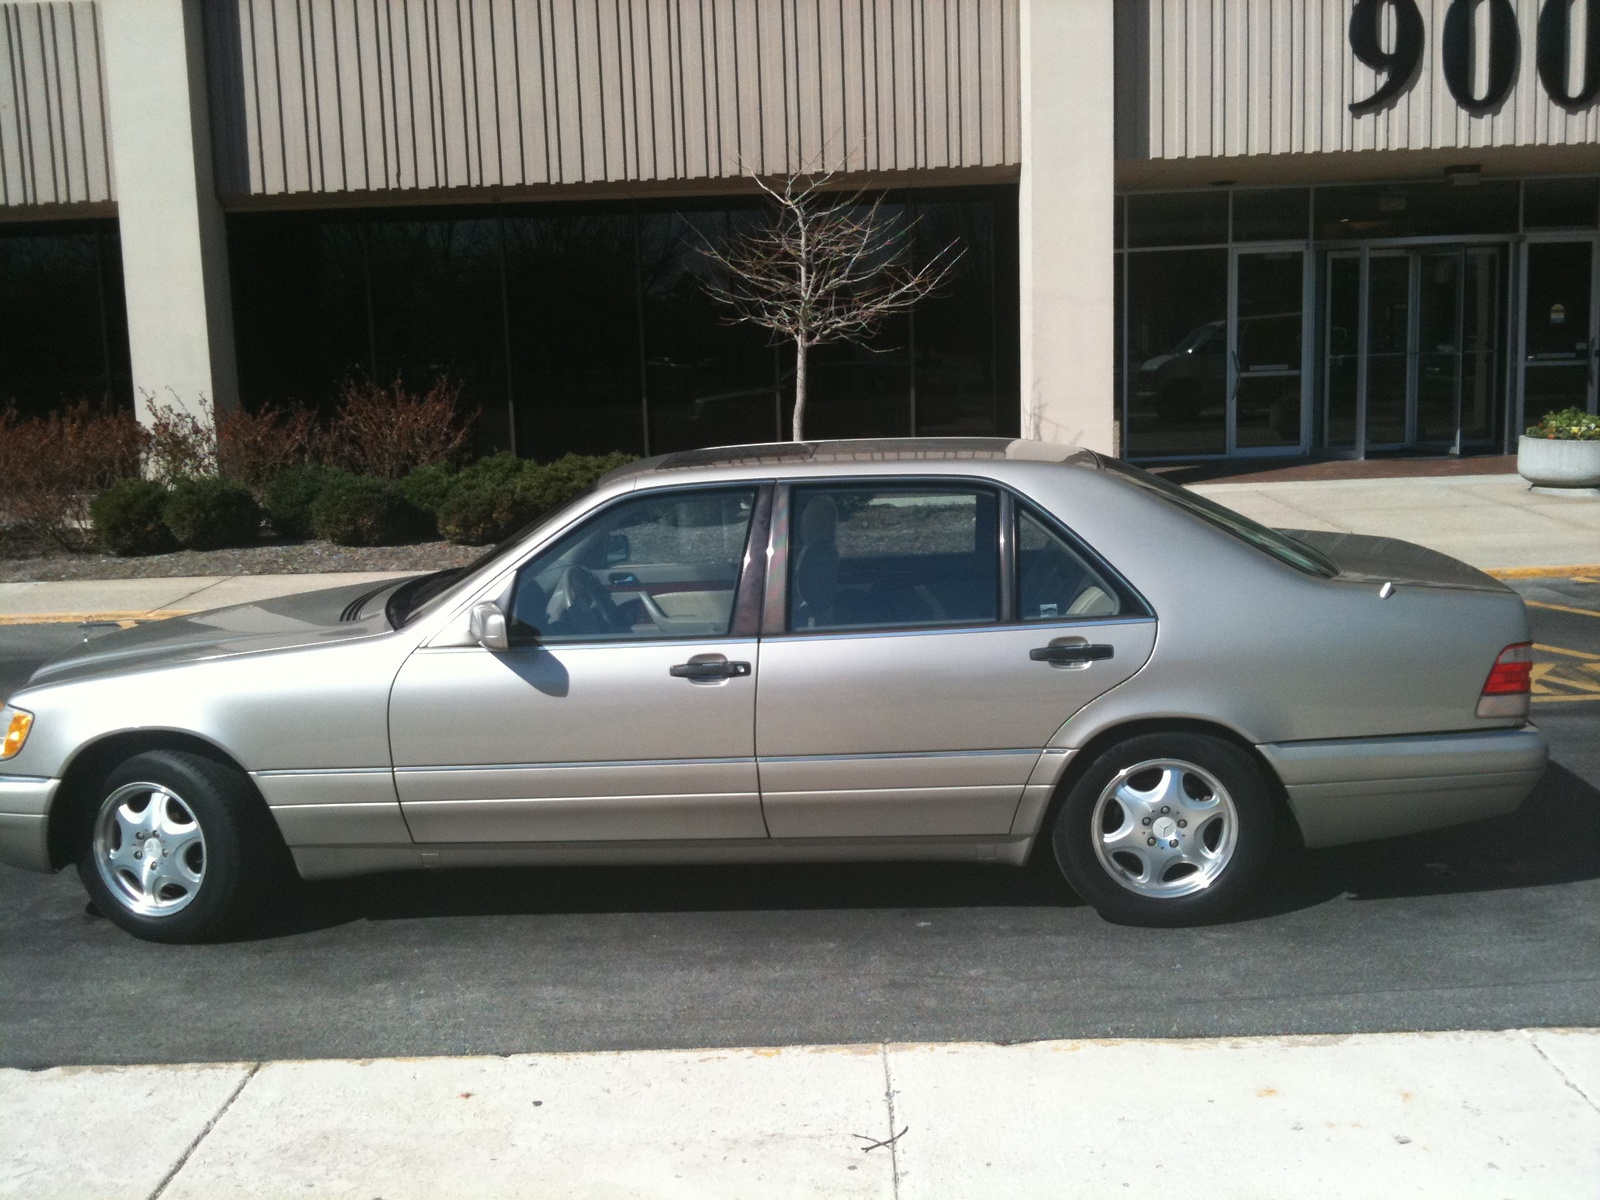 Picture of 1999 mercedes benz s class 4 dr s320 lwb sedan for 1999 mercedes benz s class